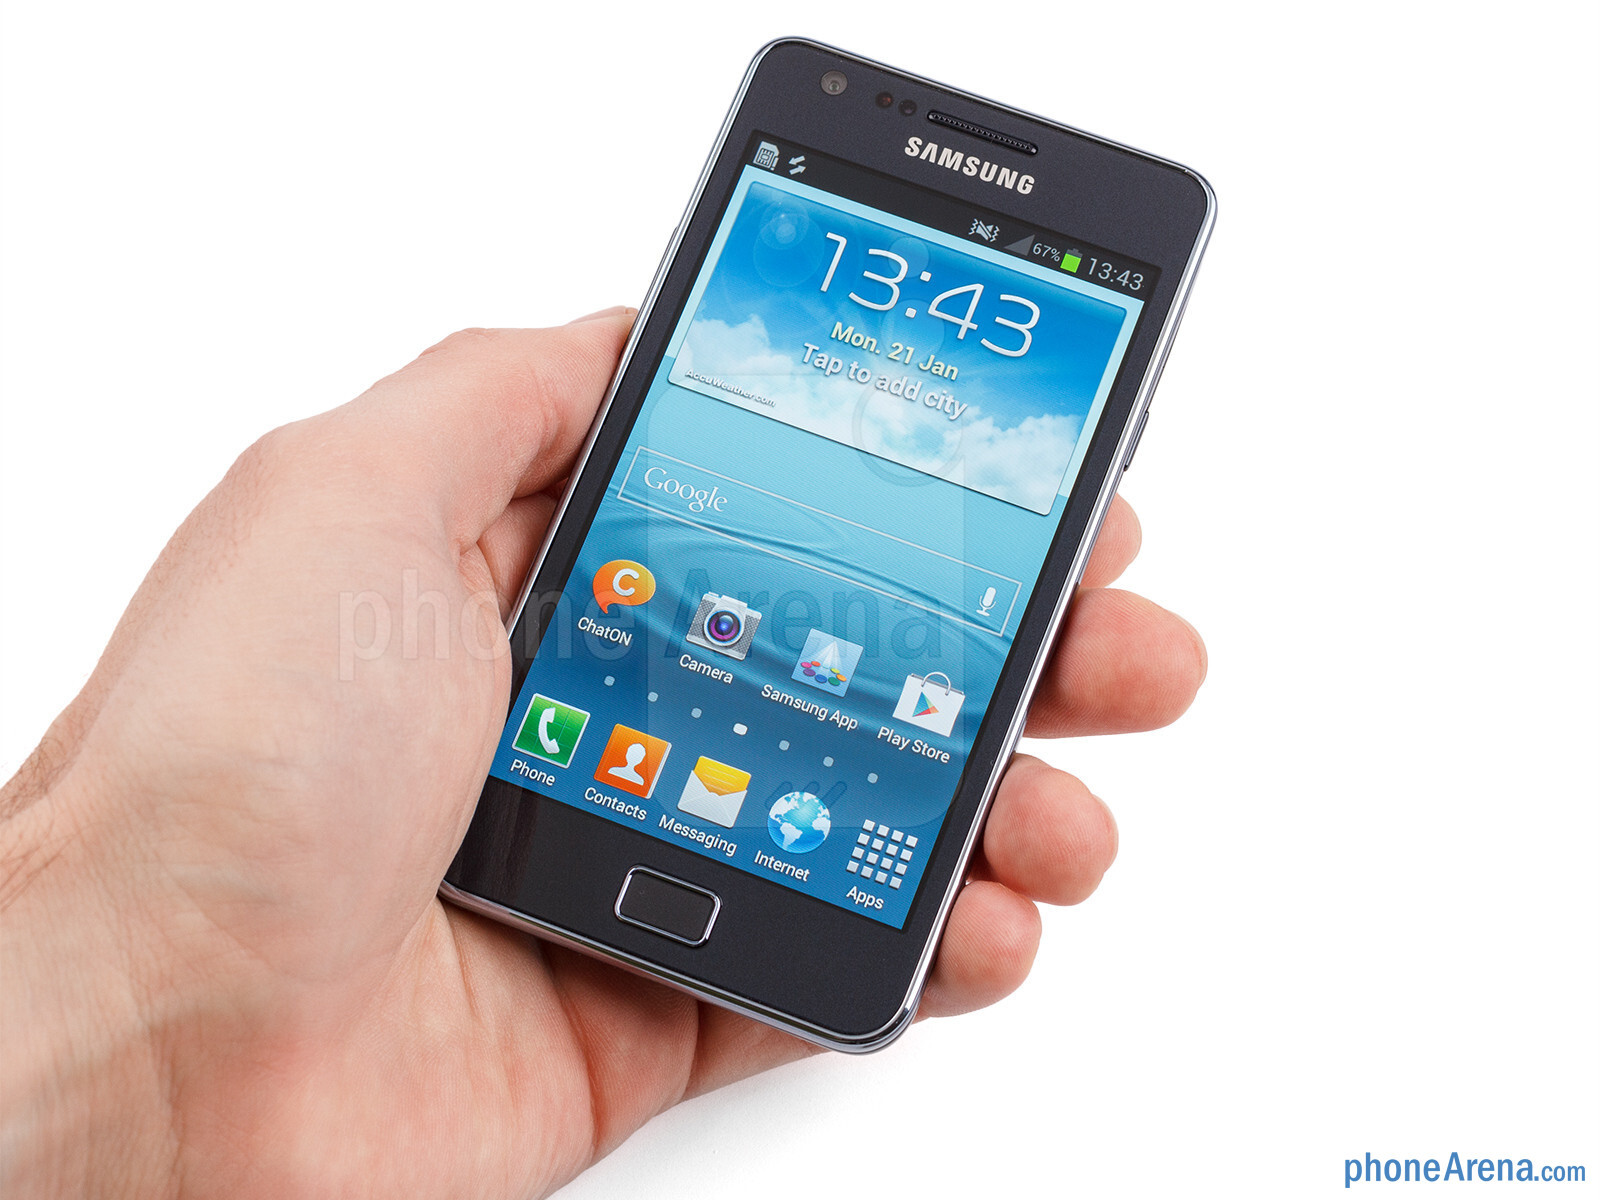 samsung galaxy s ii plus review. Black Bedroom Furniture Sets. Home Design Ideas